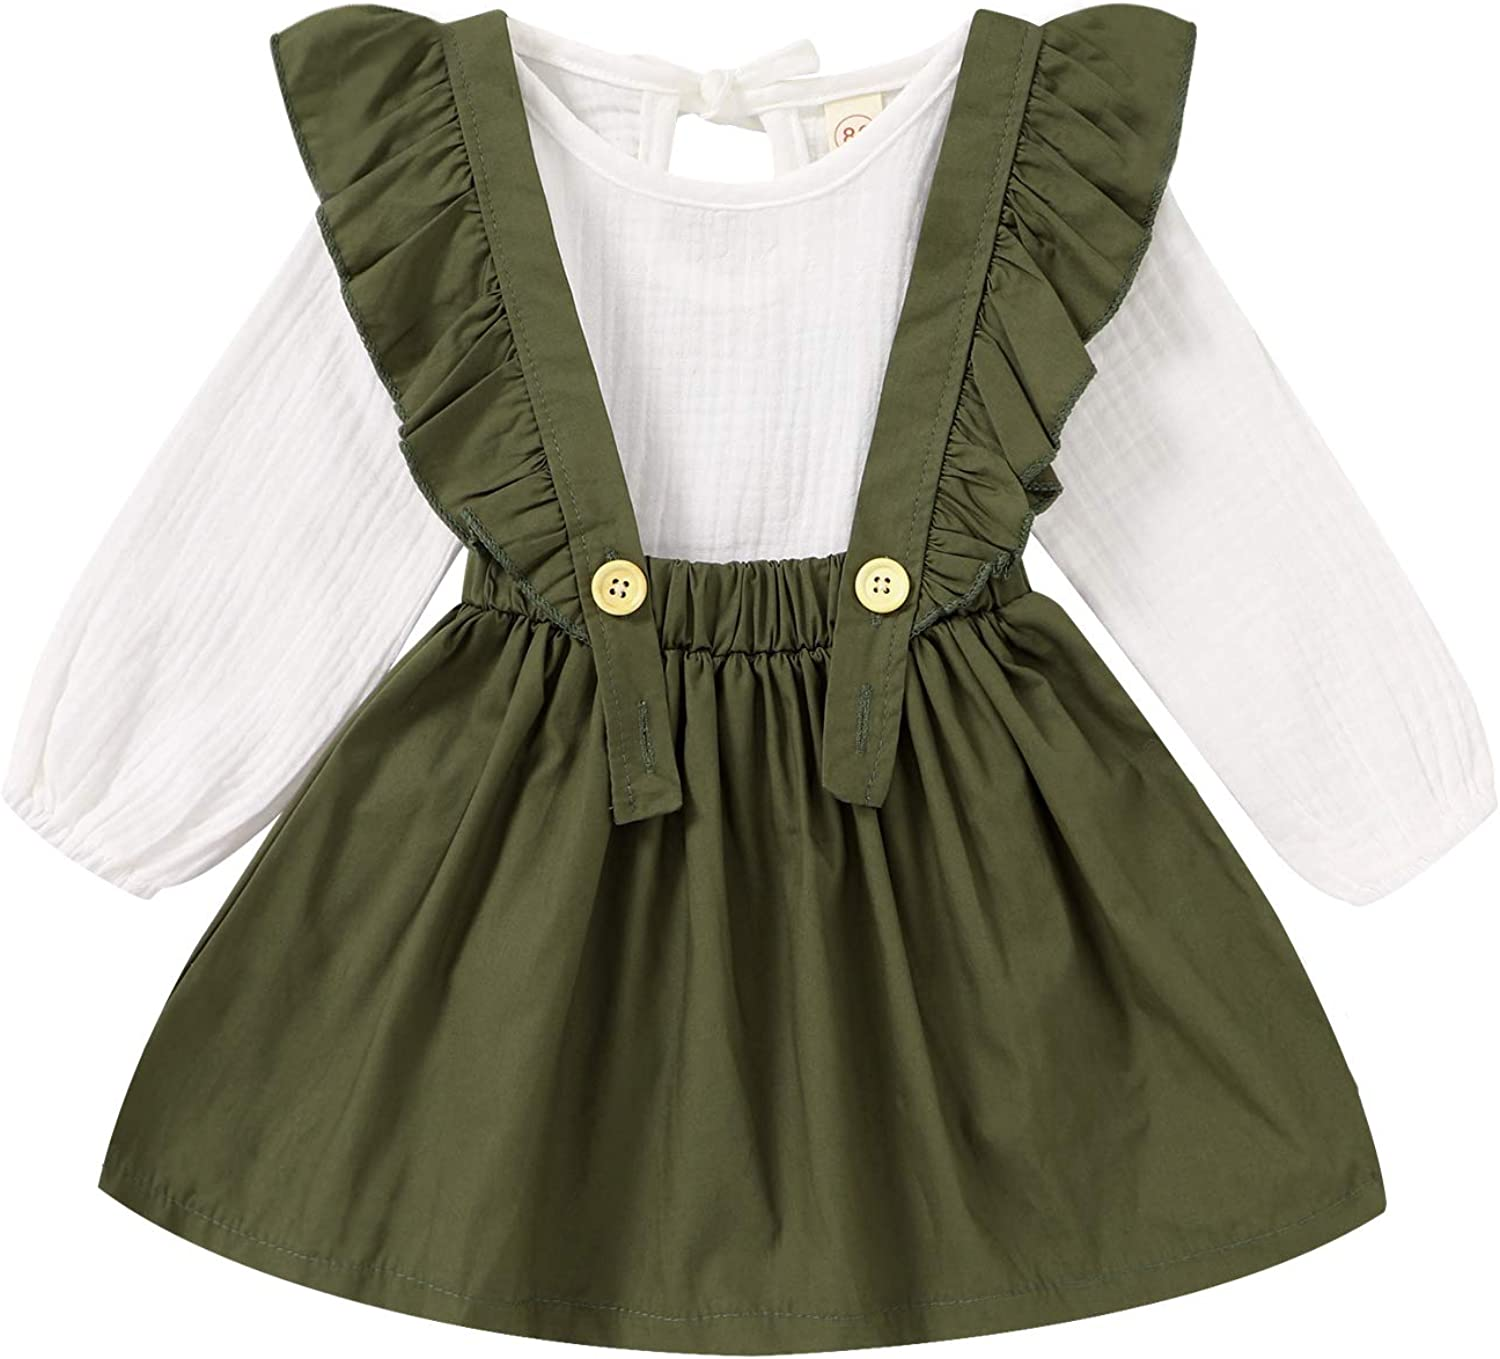 Toddler Baby Girl Suspender Skirt Sets Cotton Linen Shirts Ruffle Suspender Dress Fall Outfits Winter Clothes